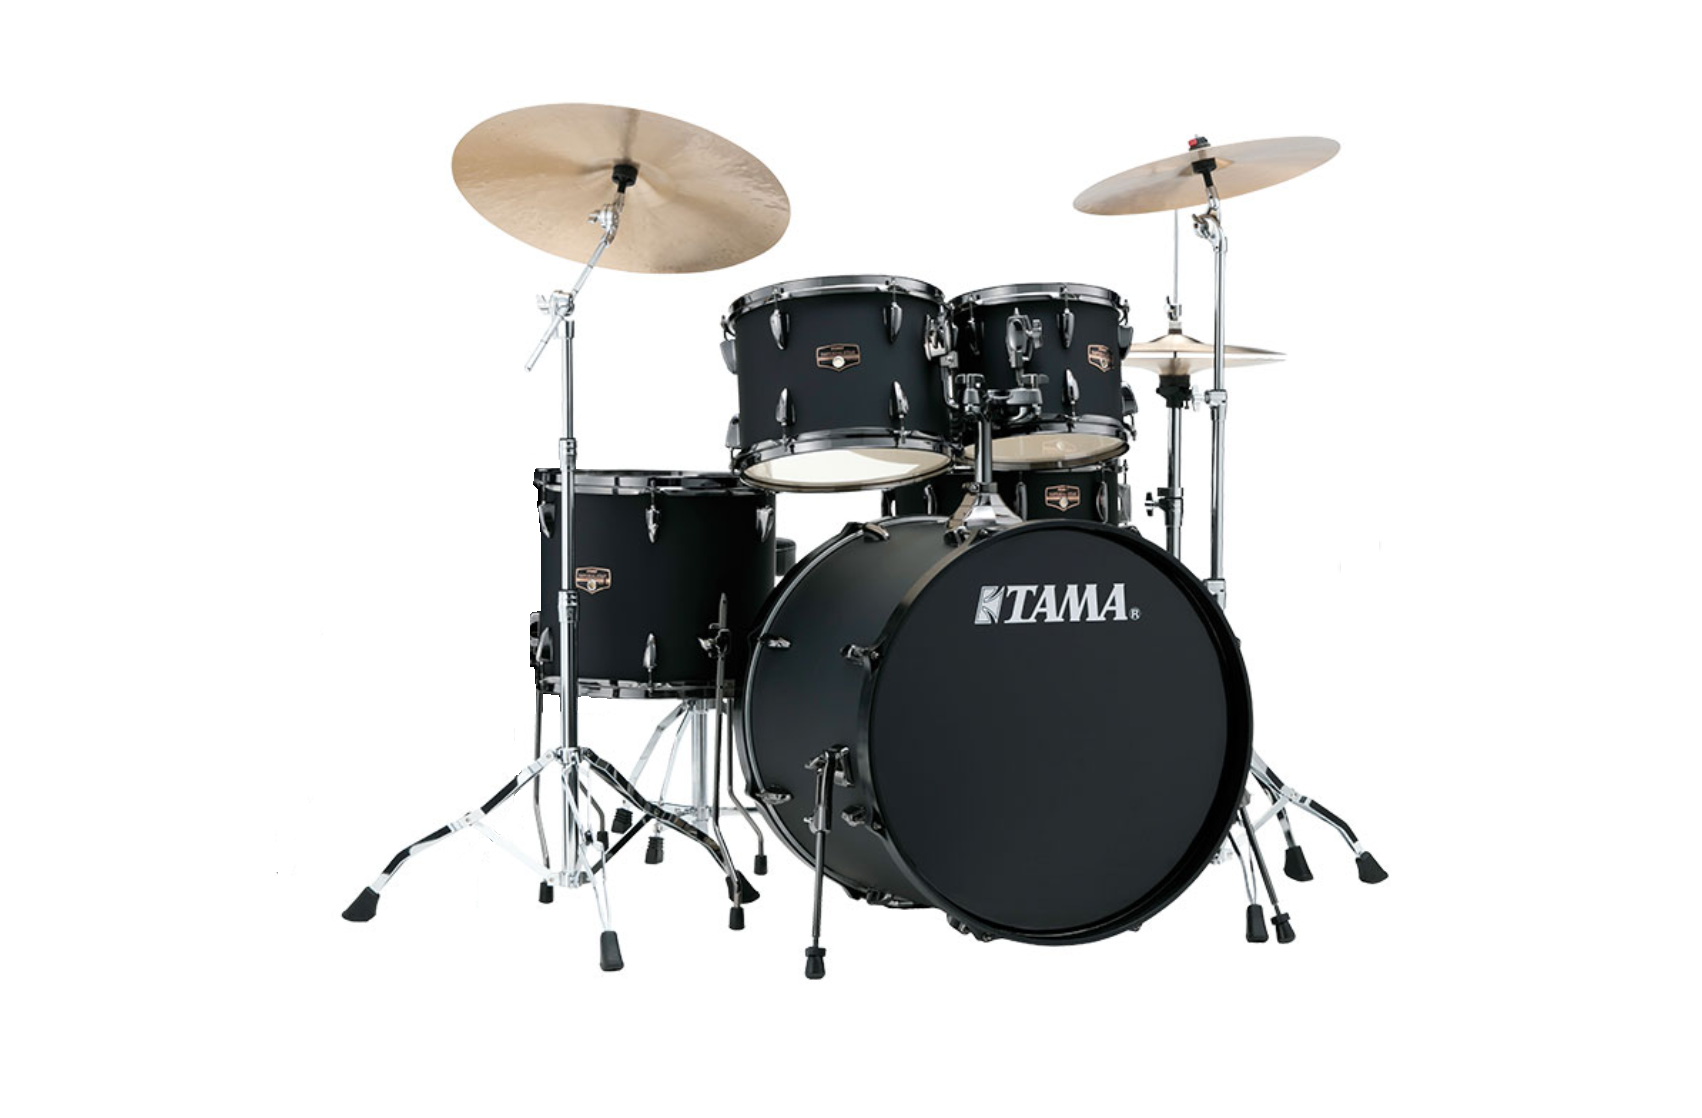 Tama Imperialstar Drum Kit with Stands and Cymbals, Hairline Black, 18'' Kick